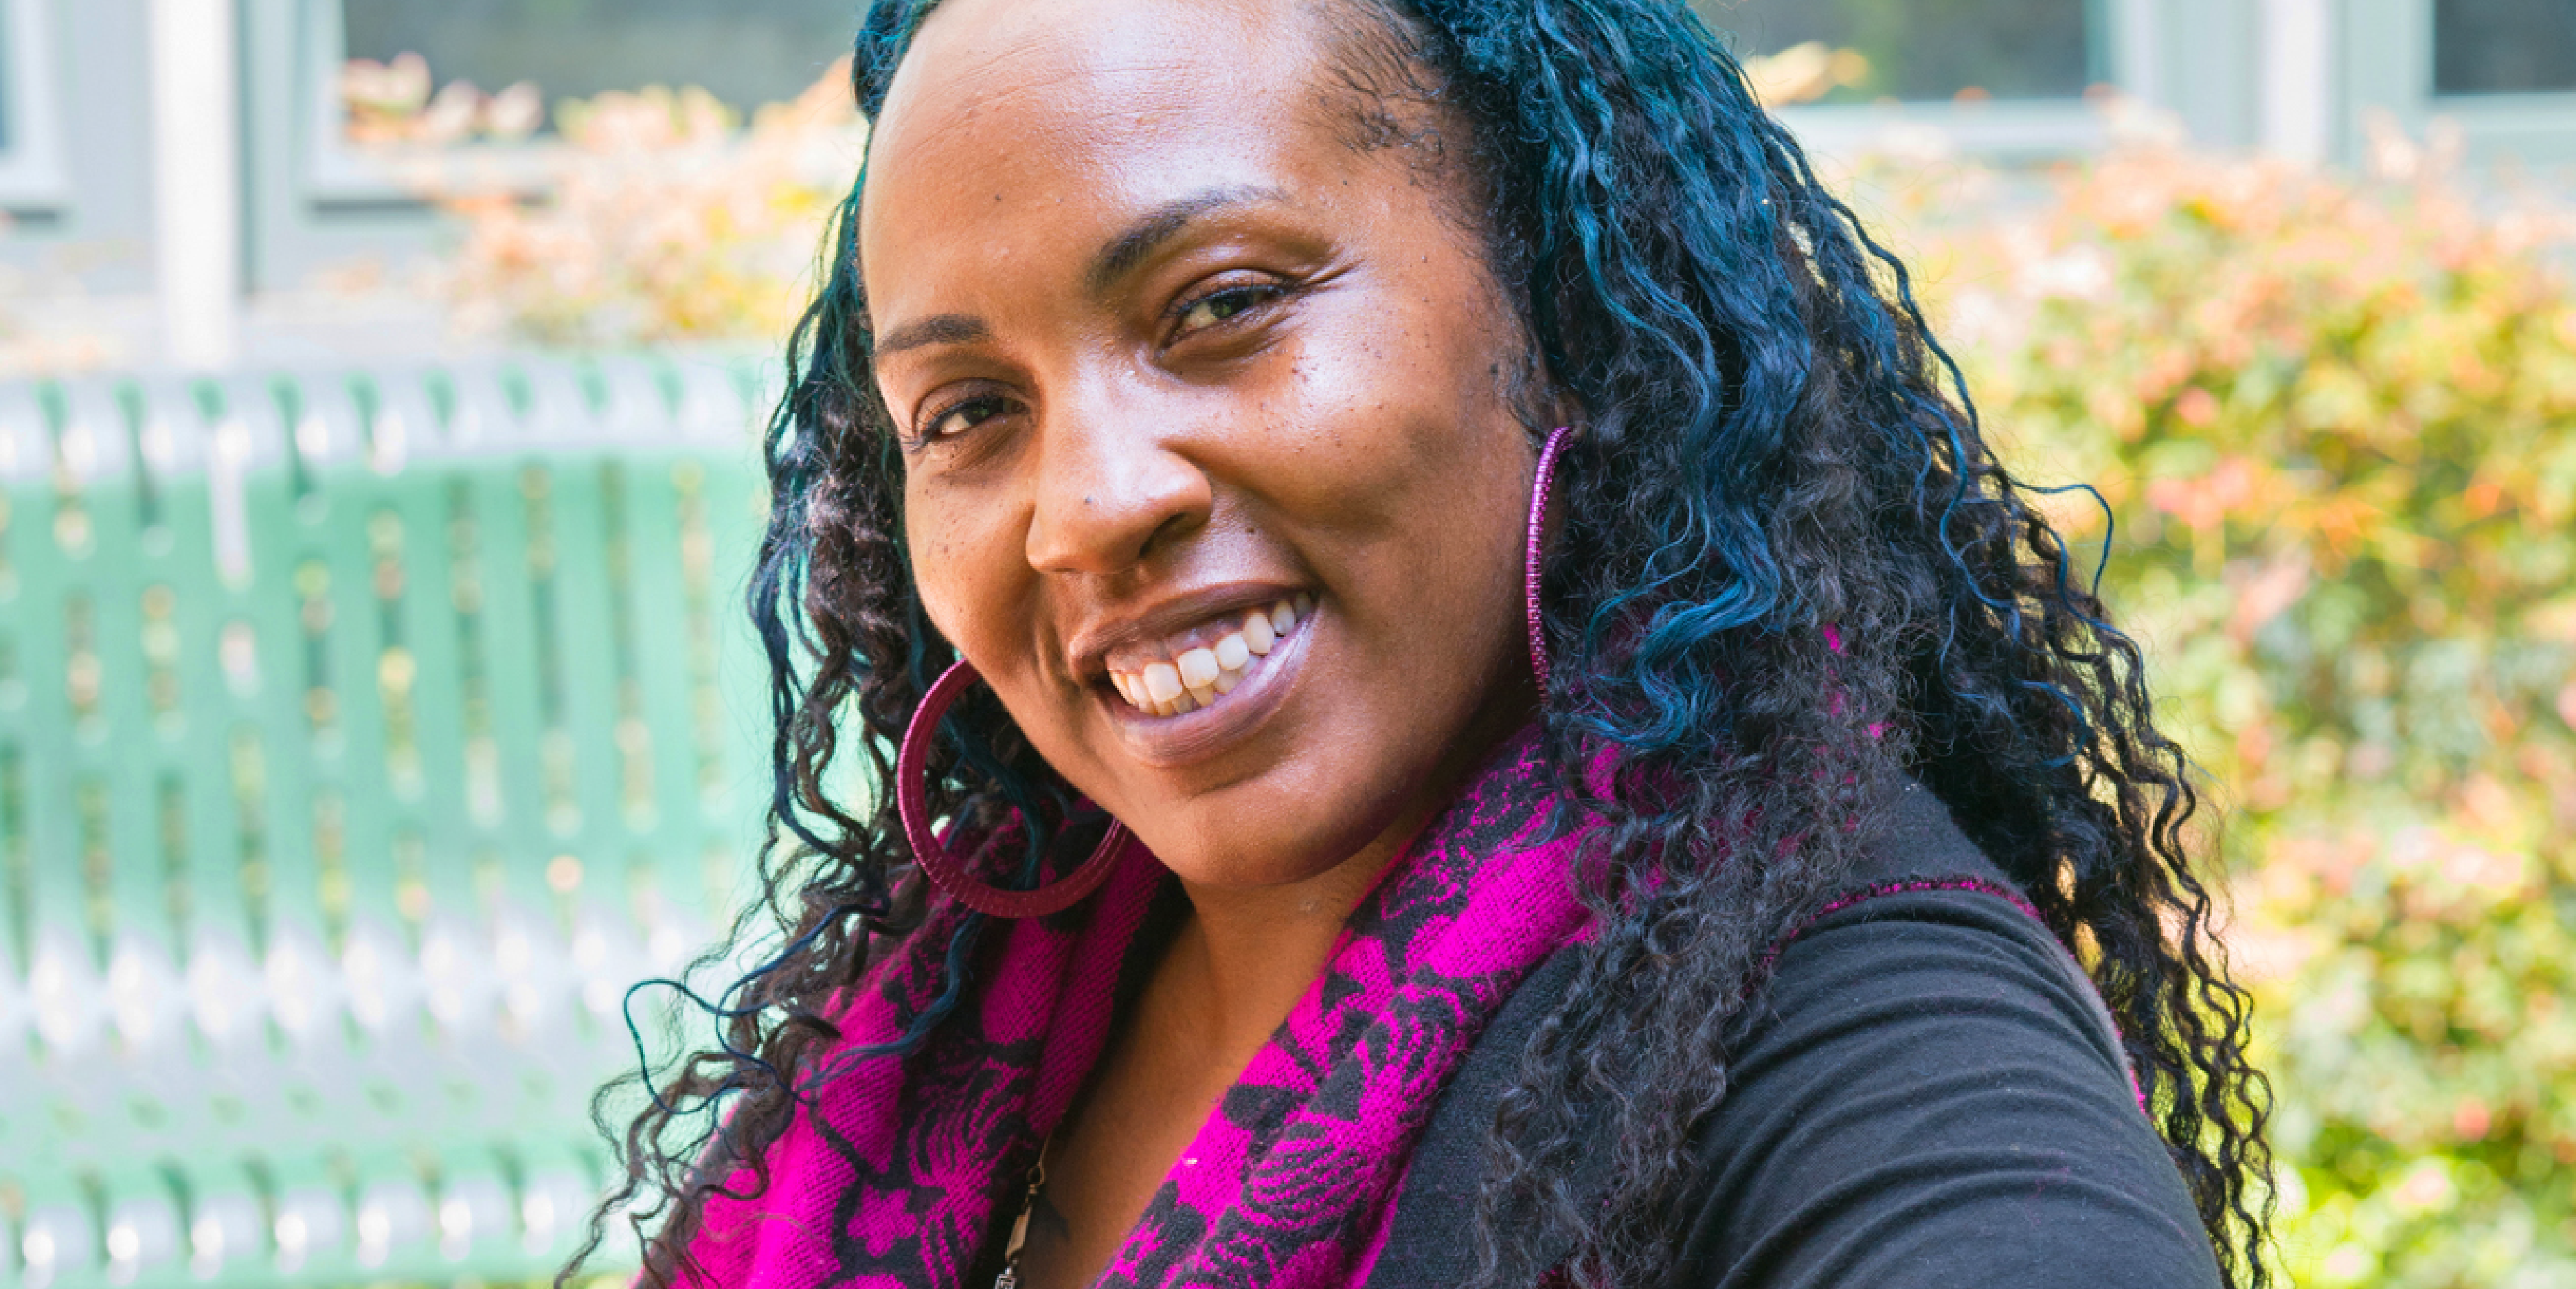 Headshot of smiling woman, Kai Bluford, who is our Resident Services Coordinator